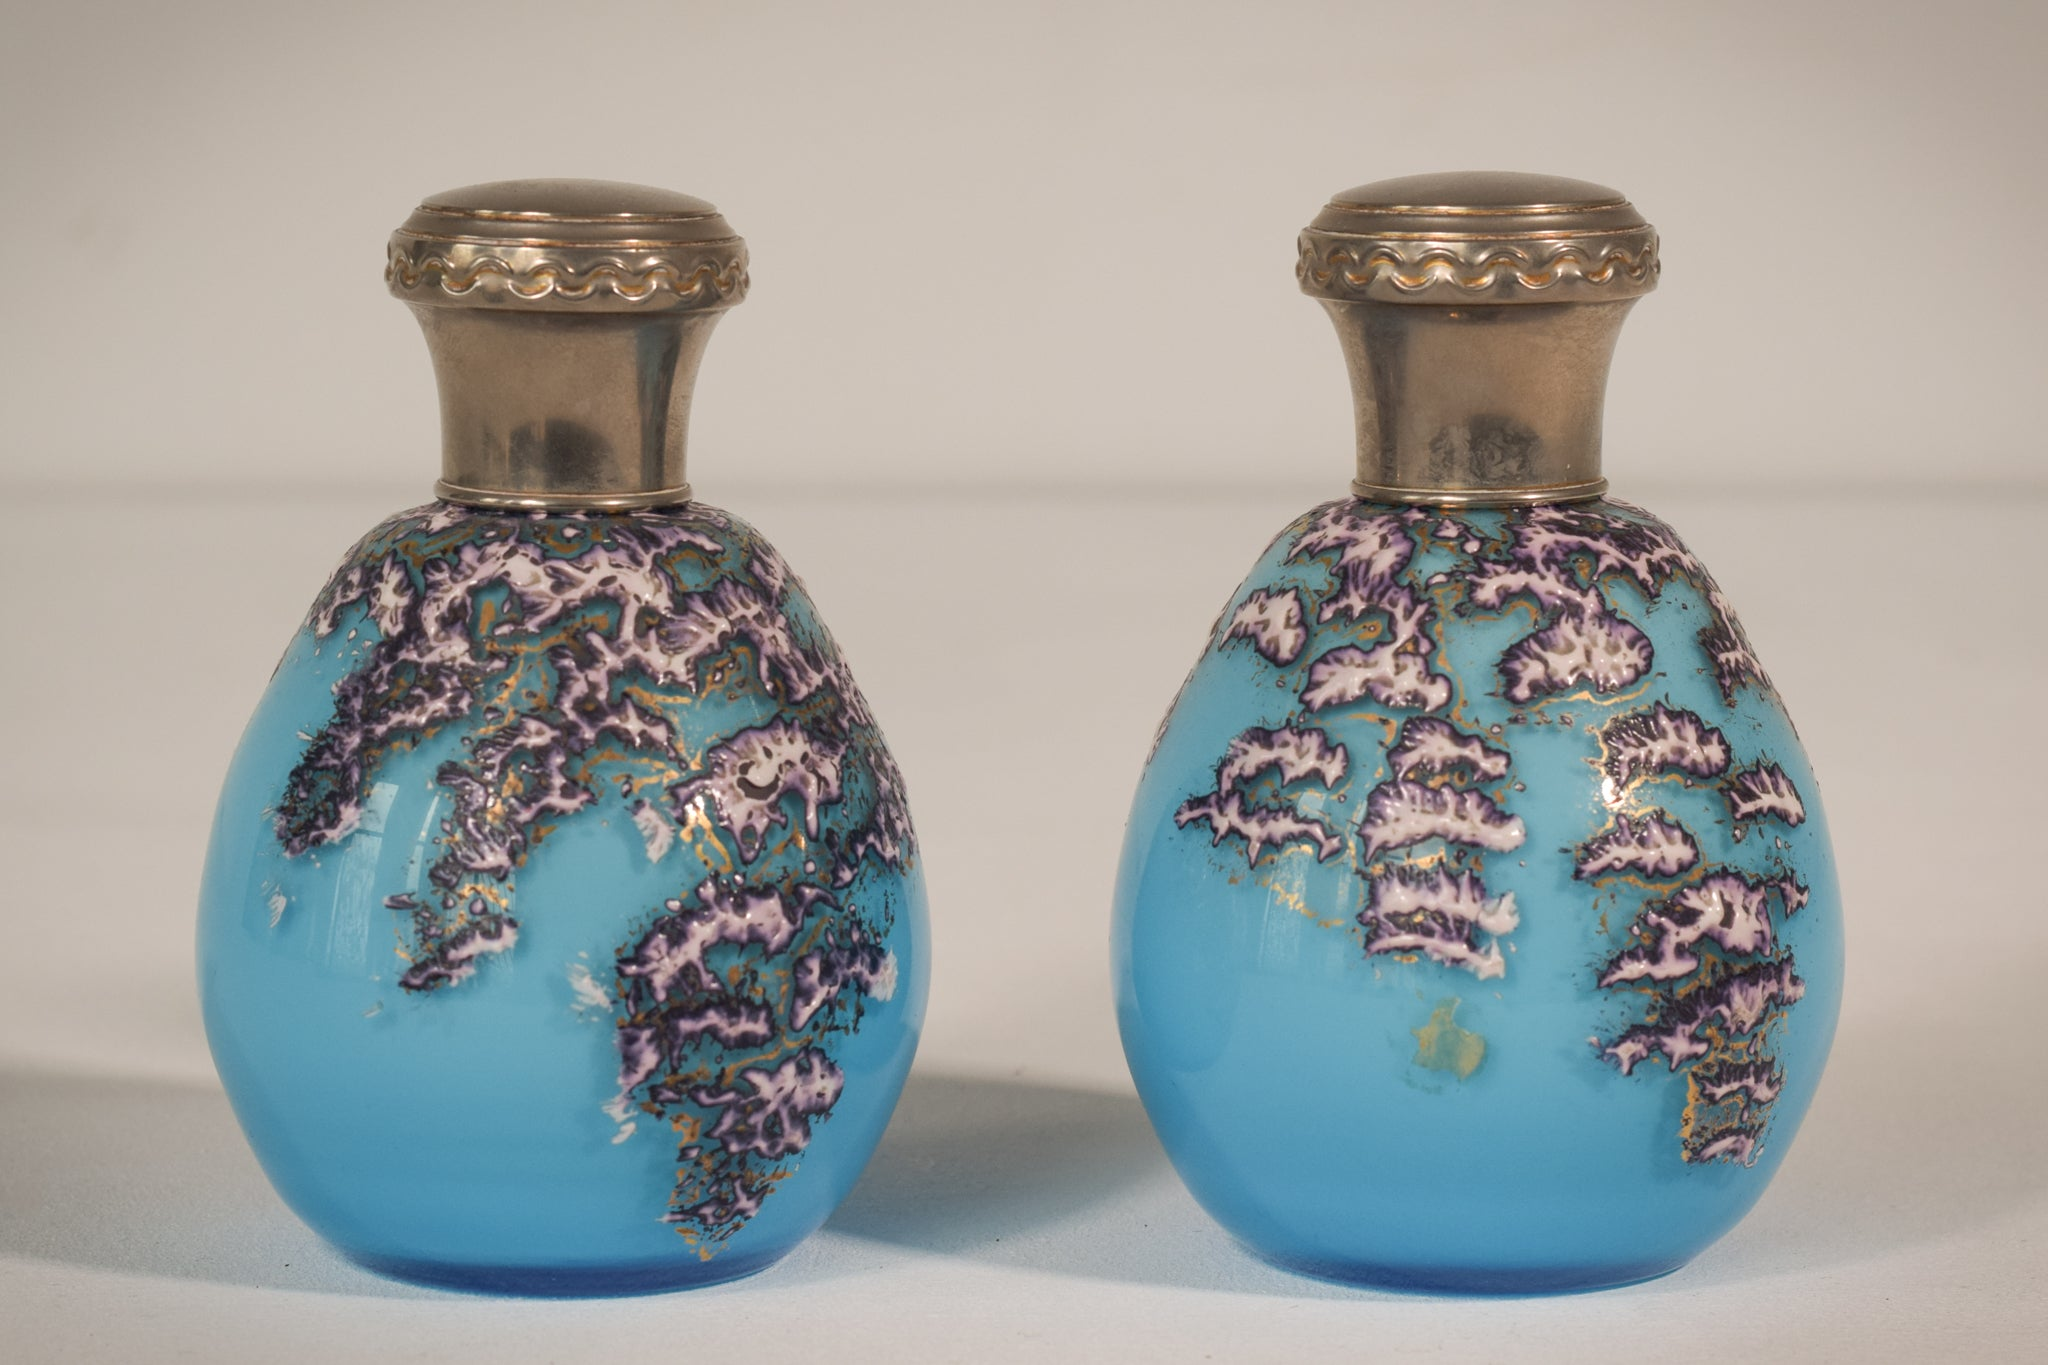 Pair of enamelled glass perfume bottles